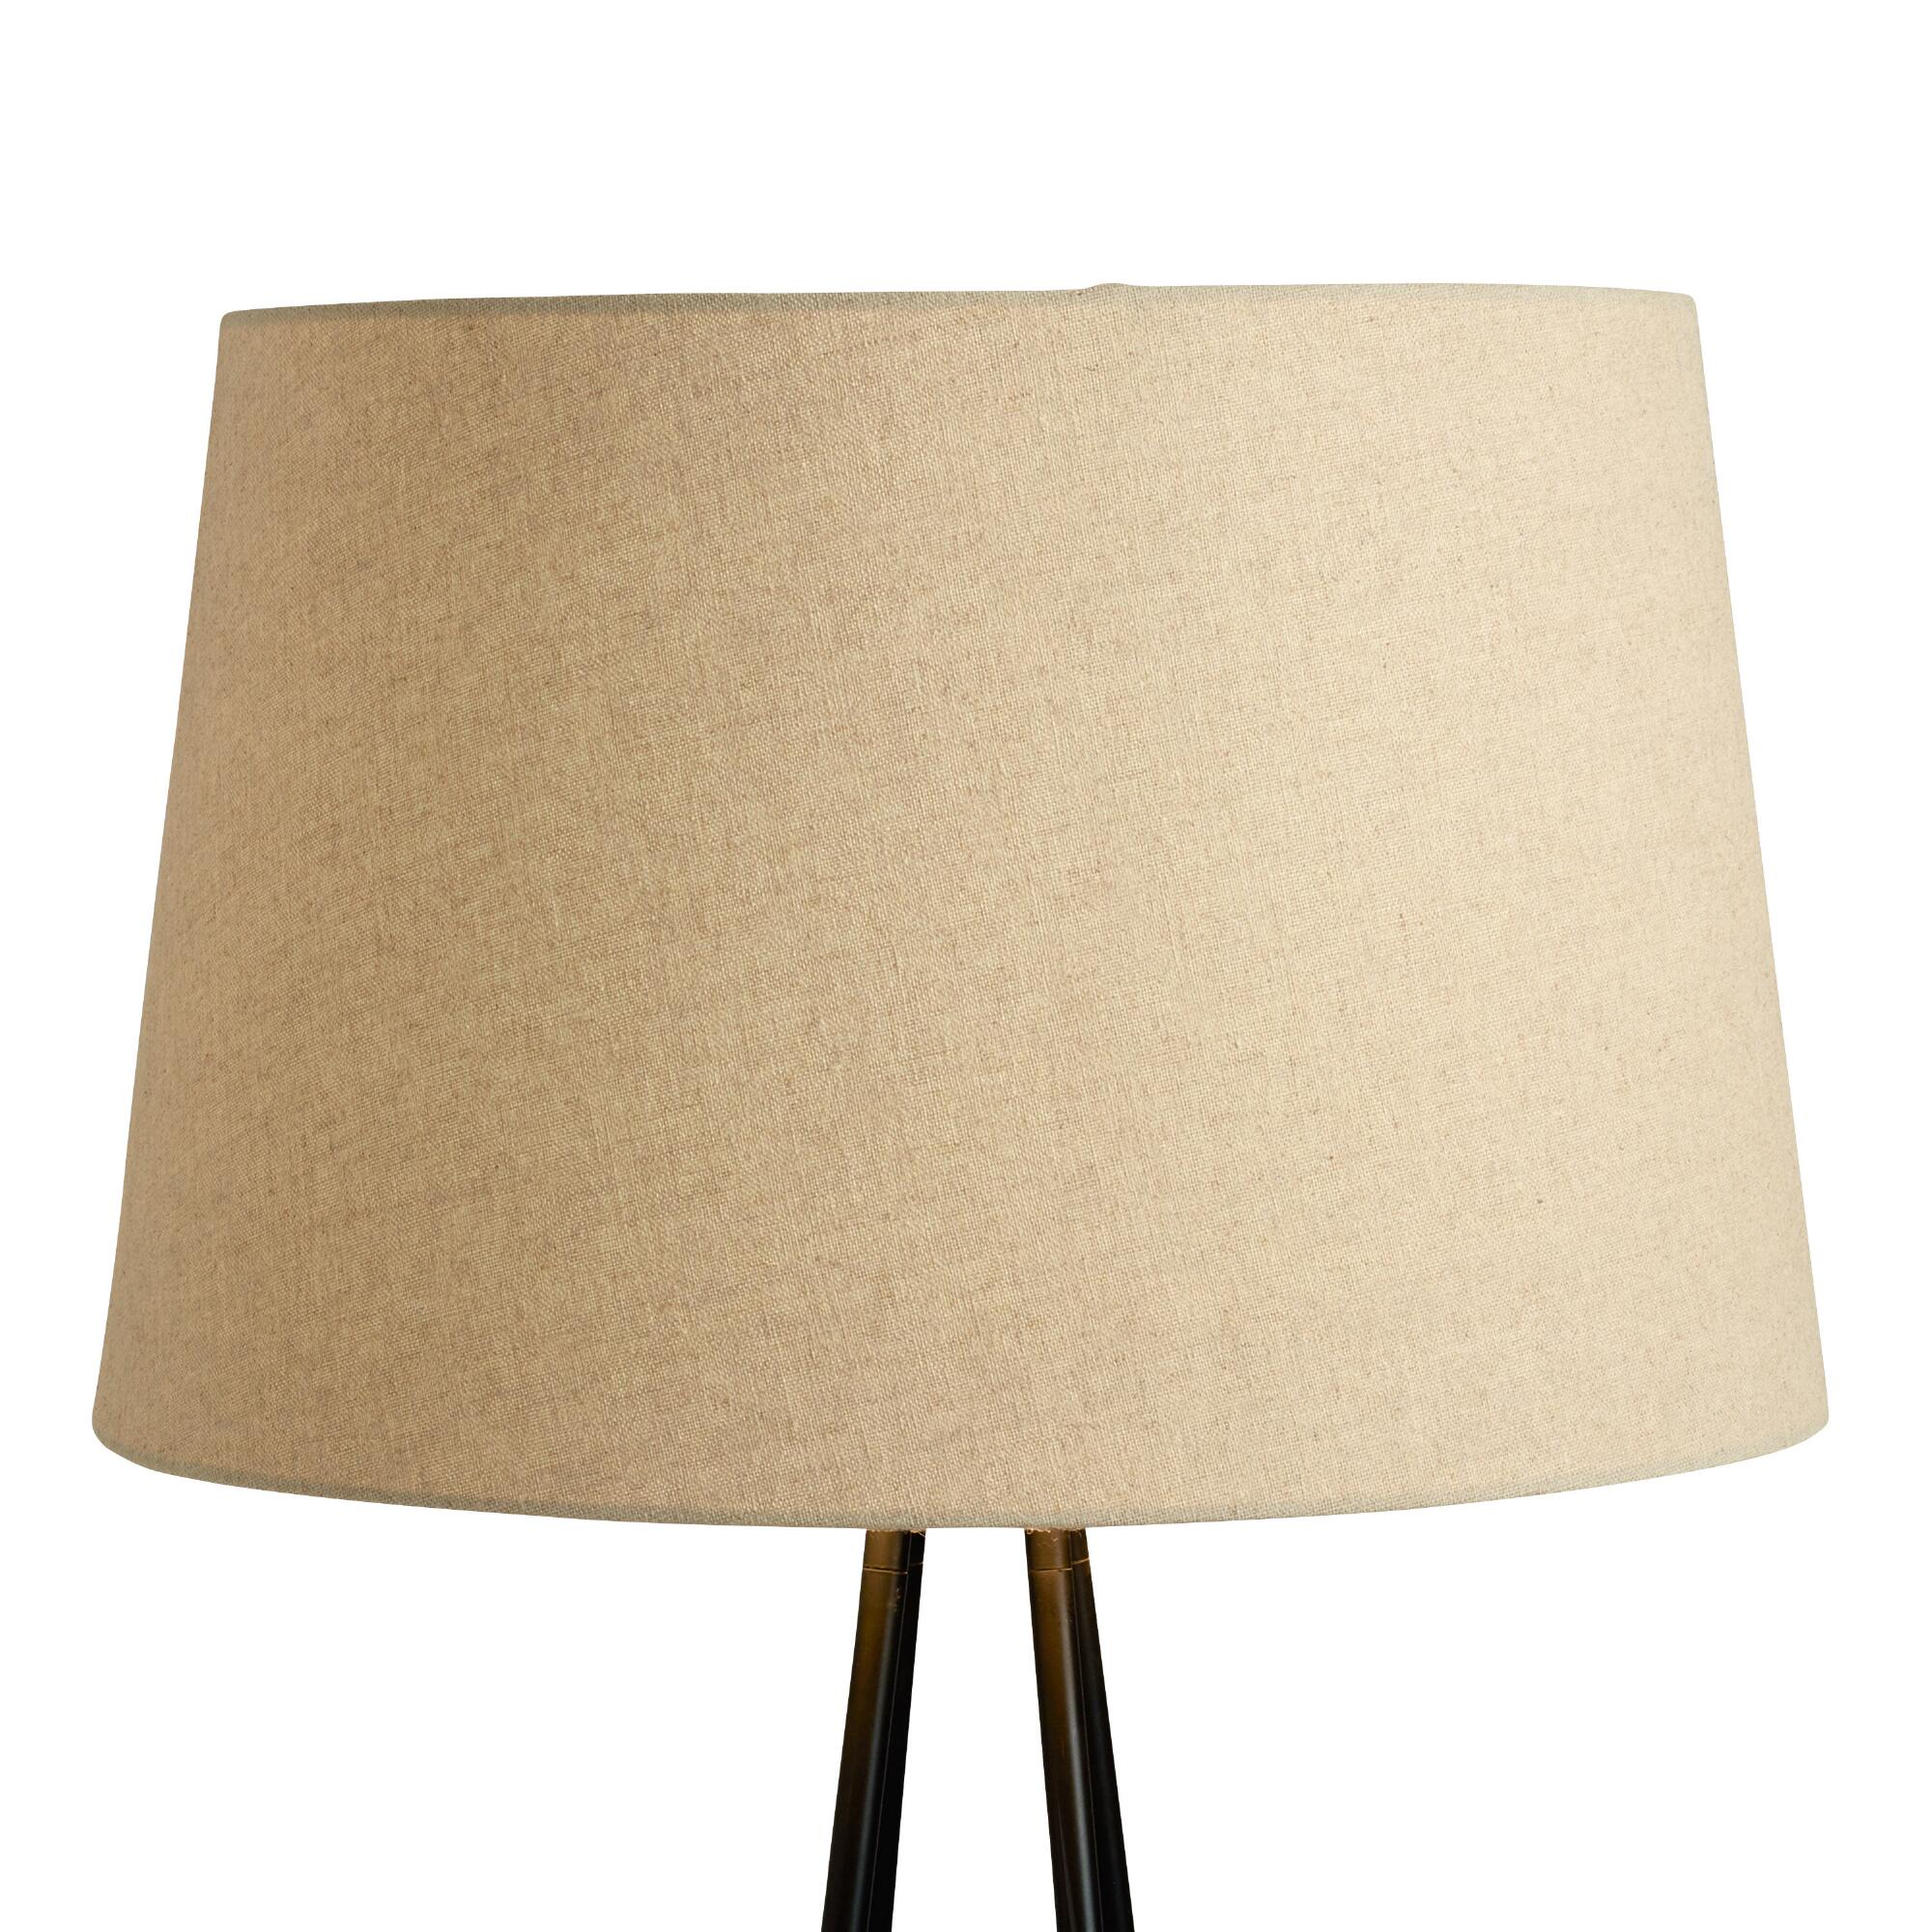 Linen floor lamp shade world market for Floor lamp with different color shades